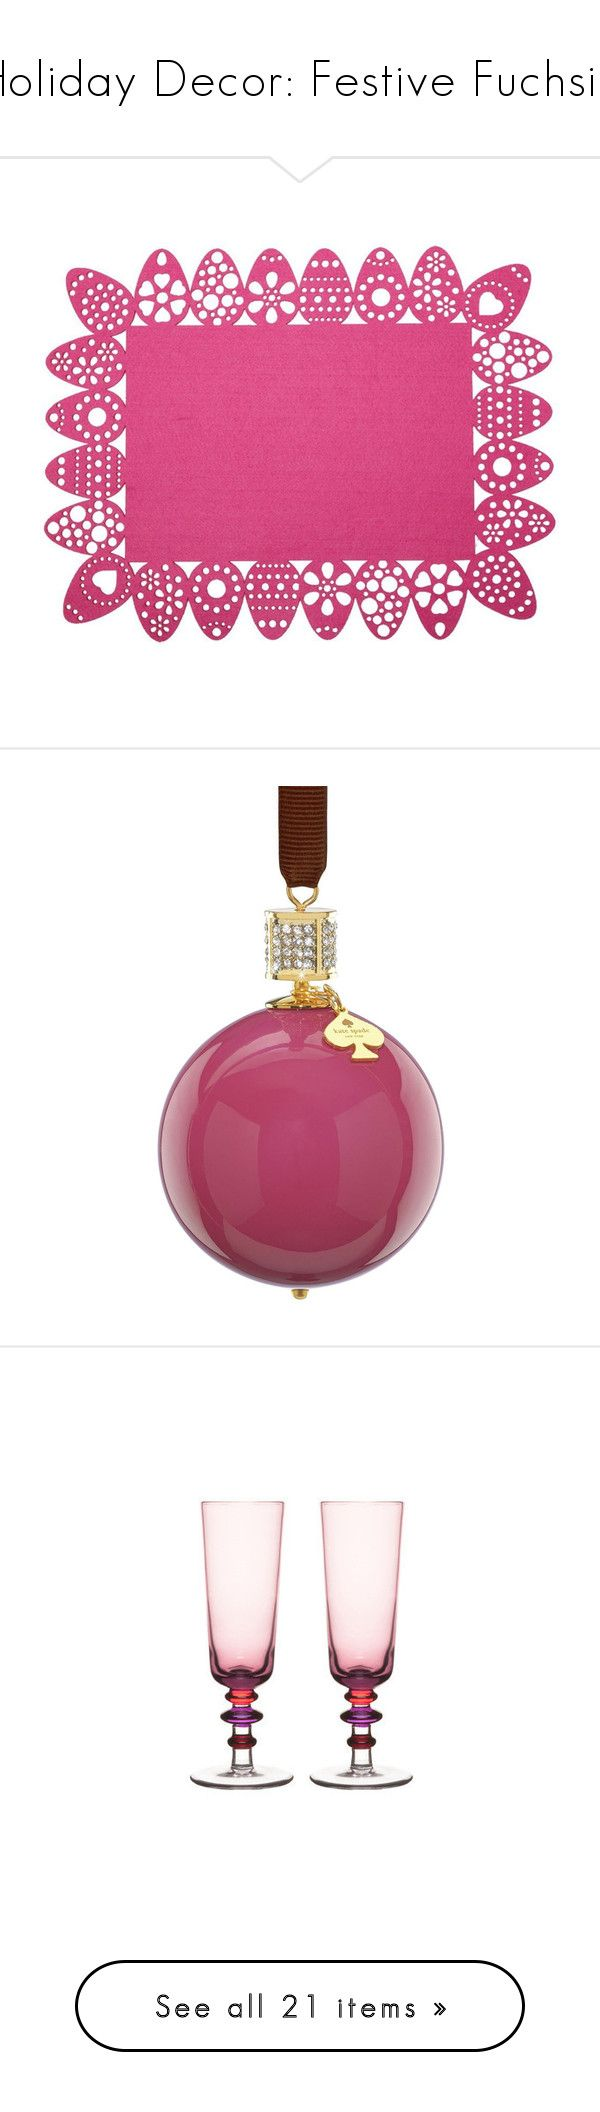 """""""Holiday Decor: Festive Fuchsia"""" by polyvore-editorial ❤ liked on Polyvore featuring festivefuchsia, home, kitchen & dining, table linens, frames, backgrounds, fillers, kitchen, borders and picture frame"""